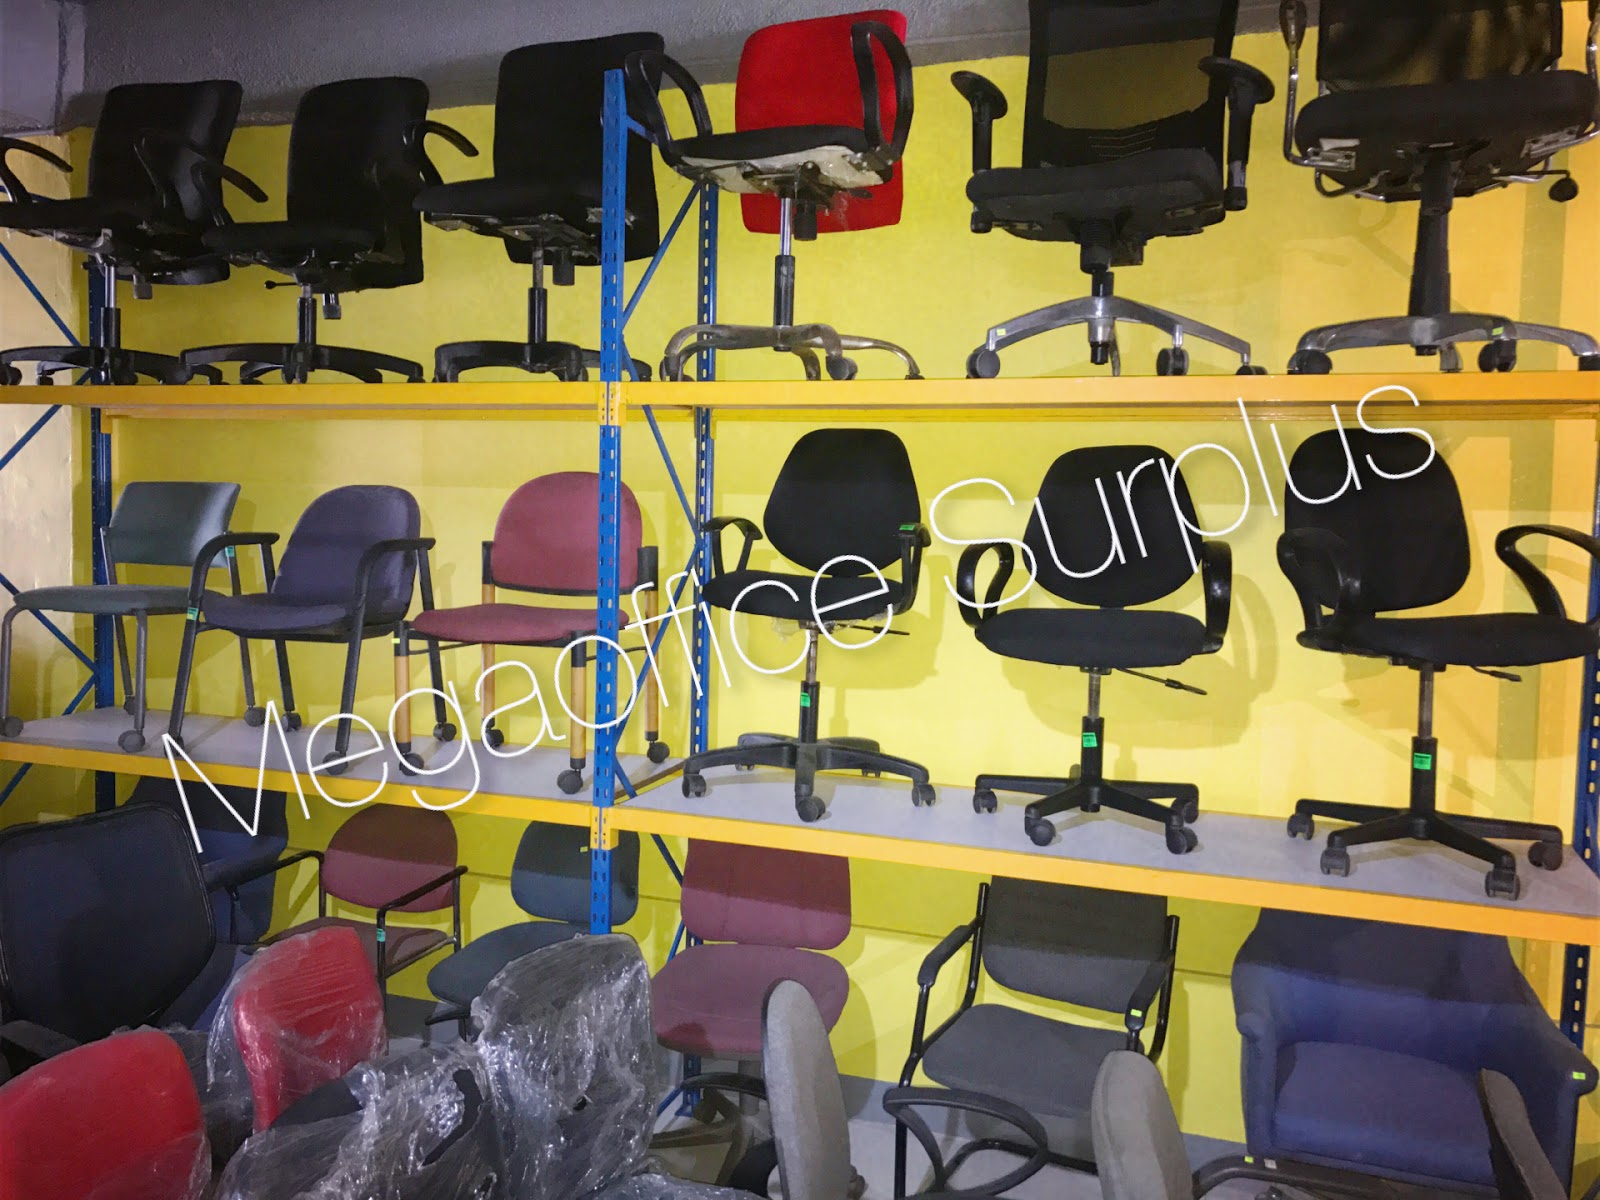 MEGAOFFICE SURPLUS PREMIERE SURPLUS FURNITURE SUPPLIER CHAIN Offers Quality  Pre Owned (second Hand) And Used Office Furniture At A Fraction Of The Cost  Of ...